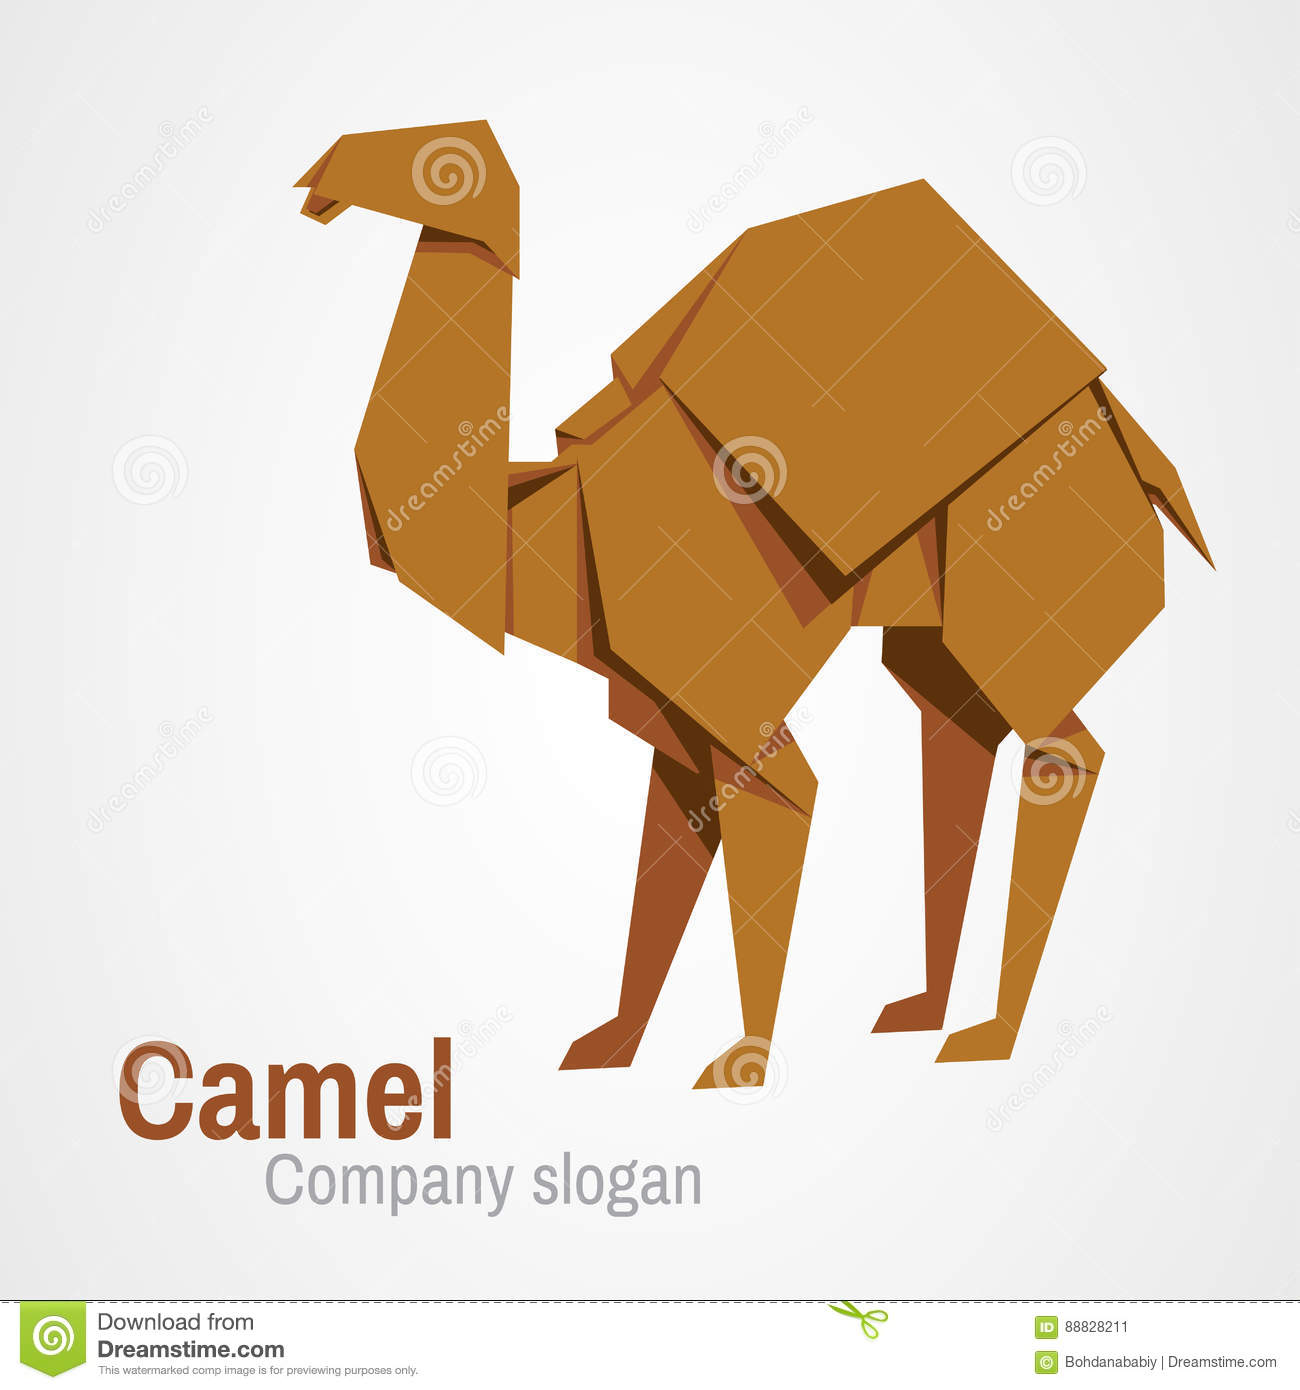 Camel logo origami stock vector. Image of artwork ... - photo#10